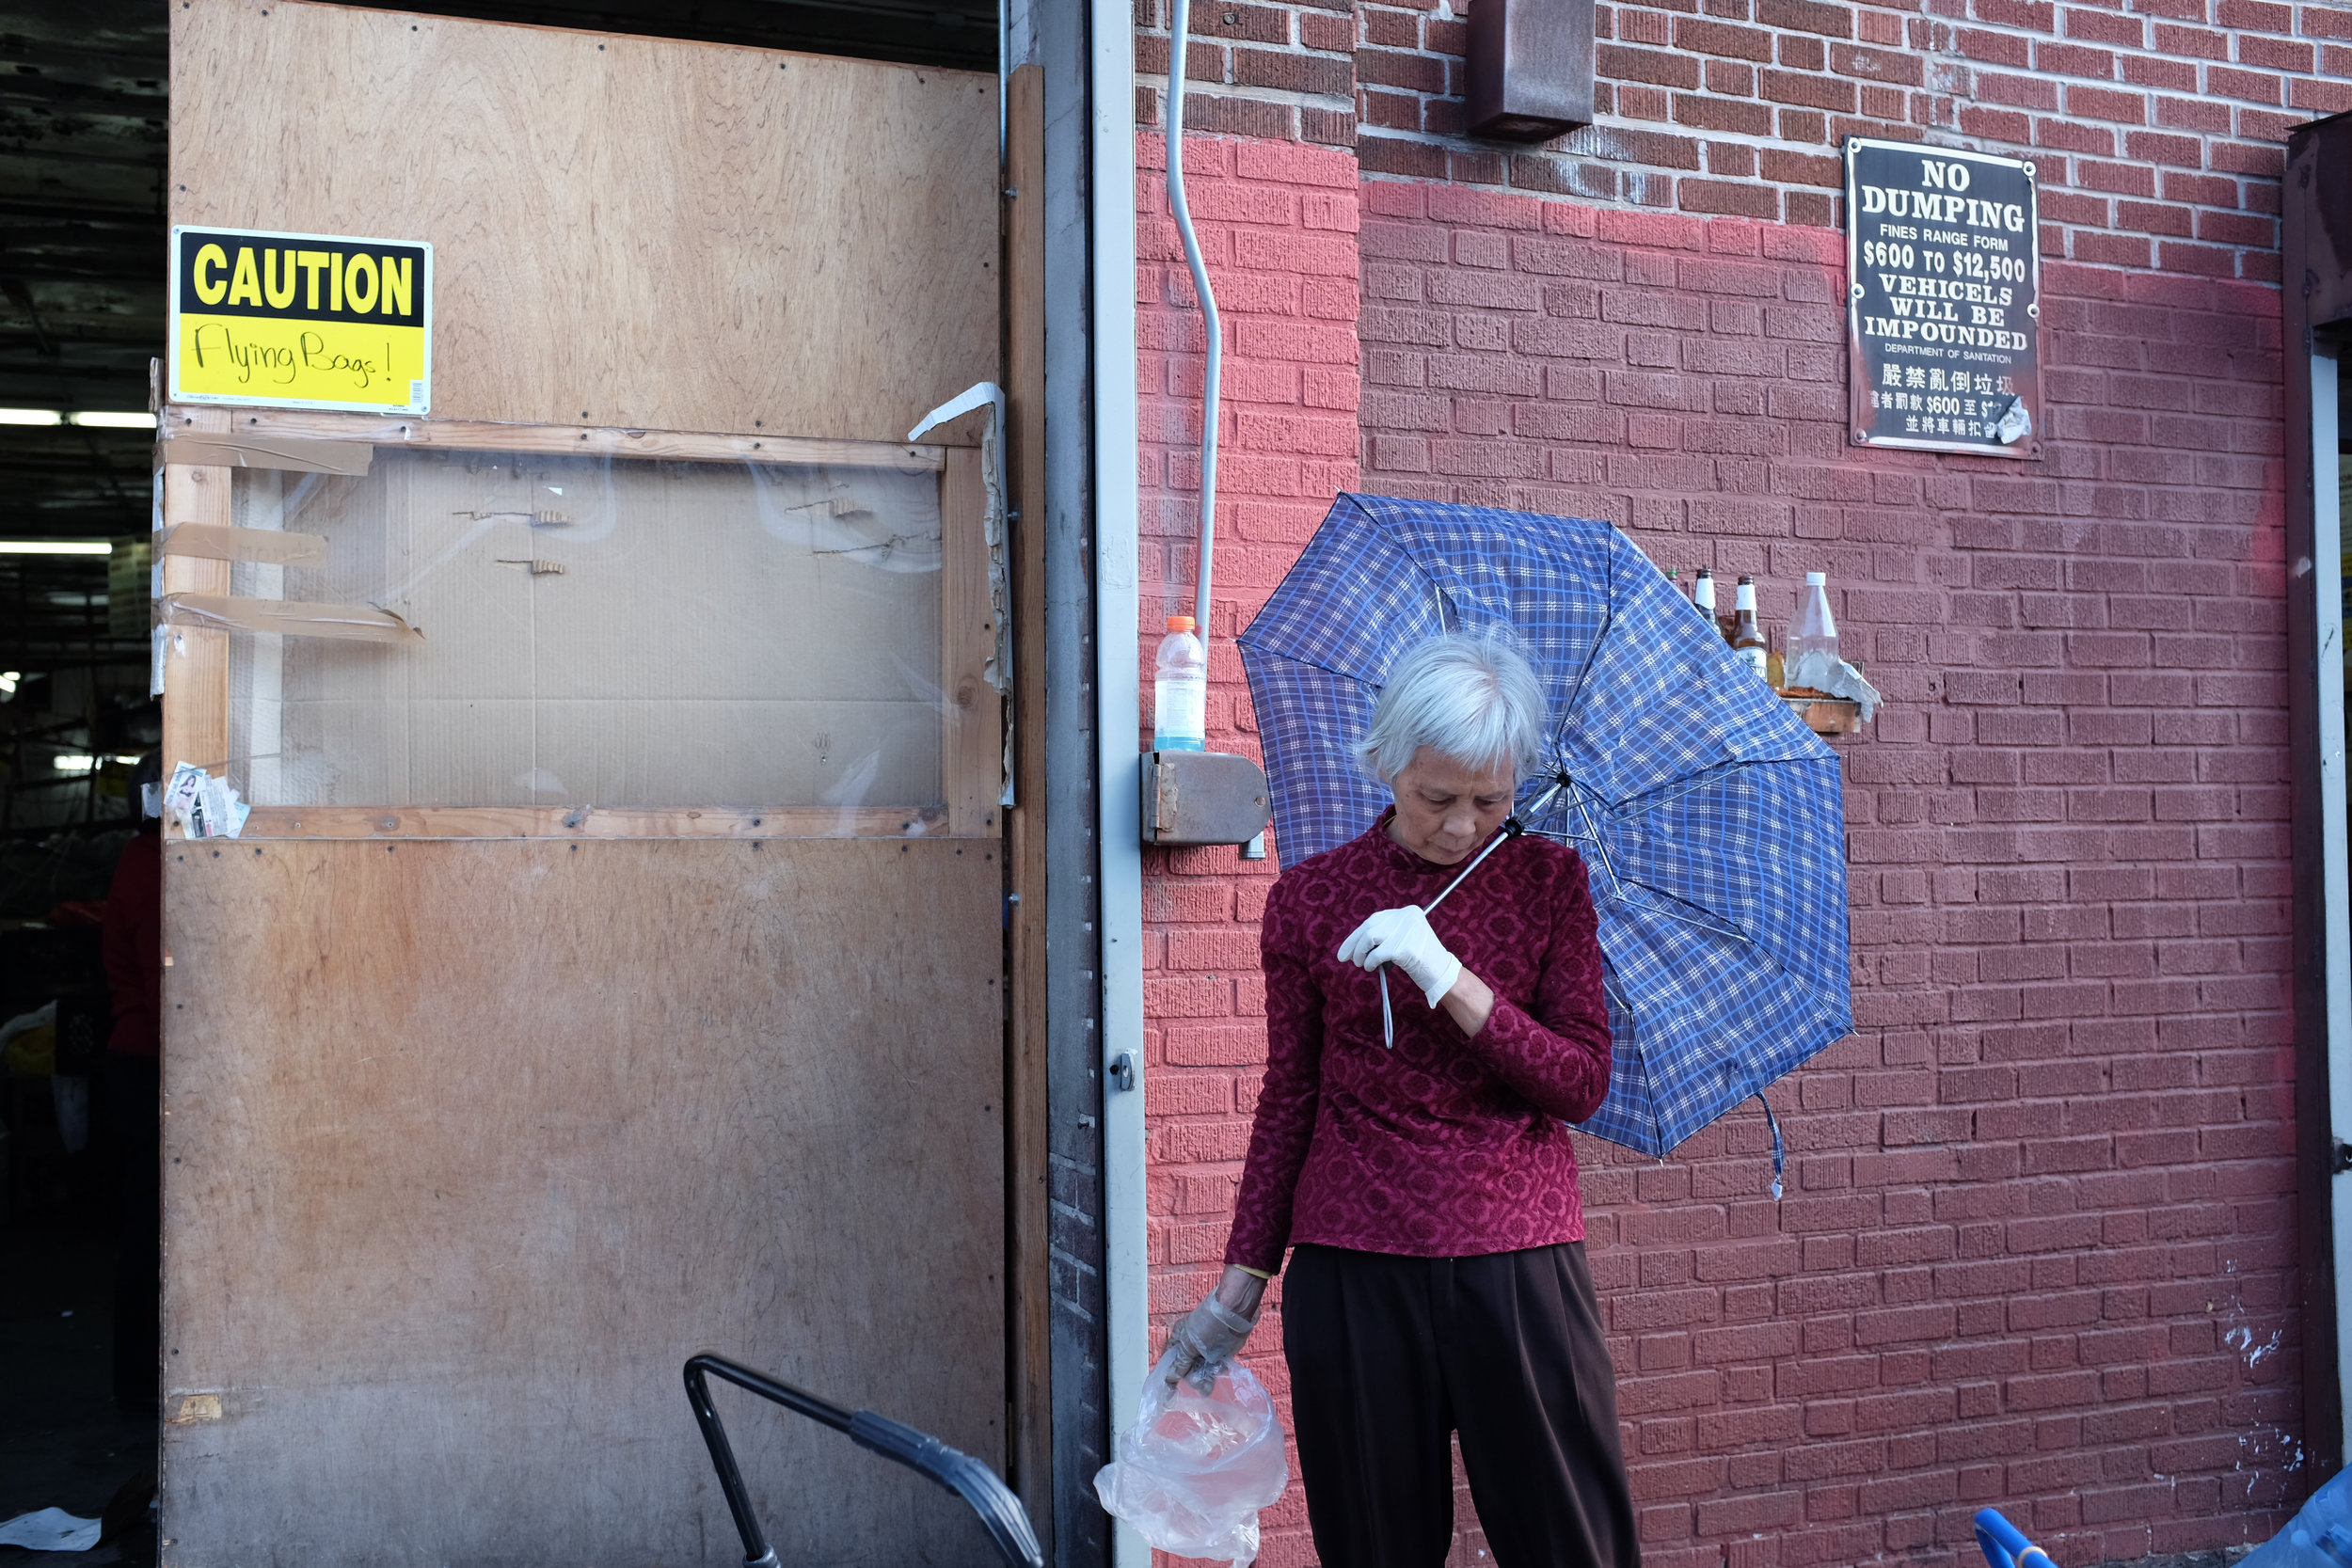 A woman pauses to take a break from her work in front of the recycling center.